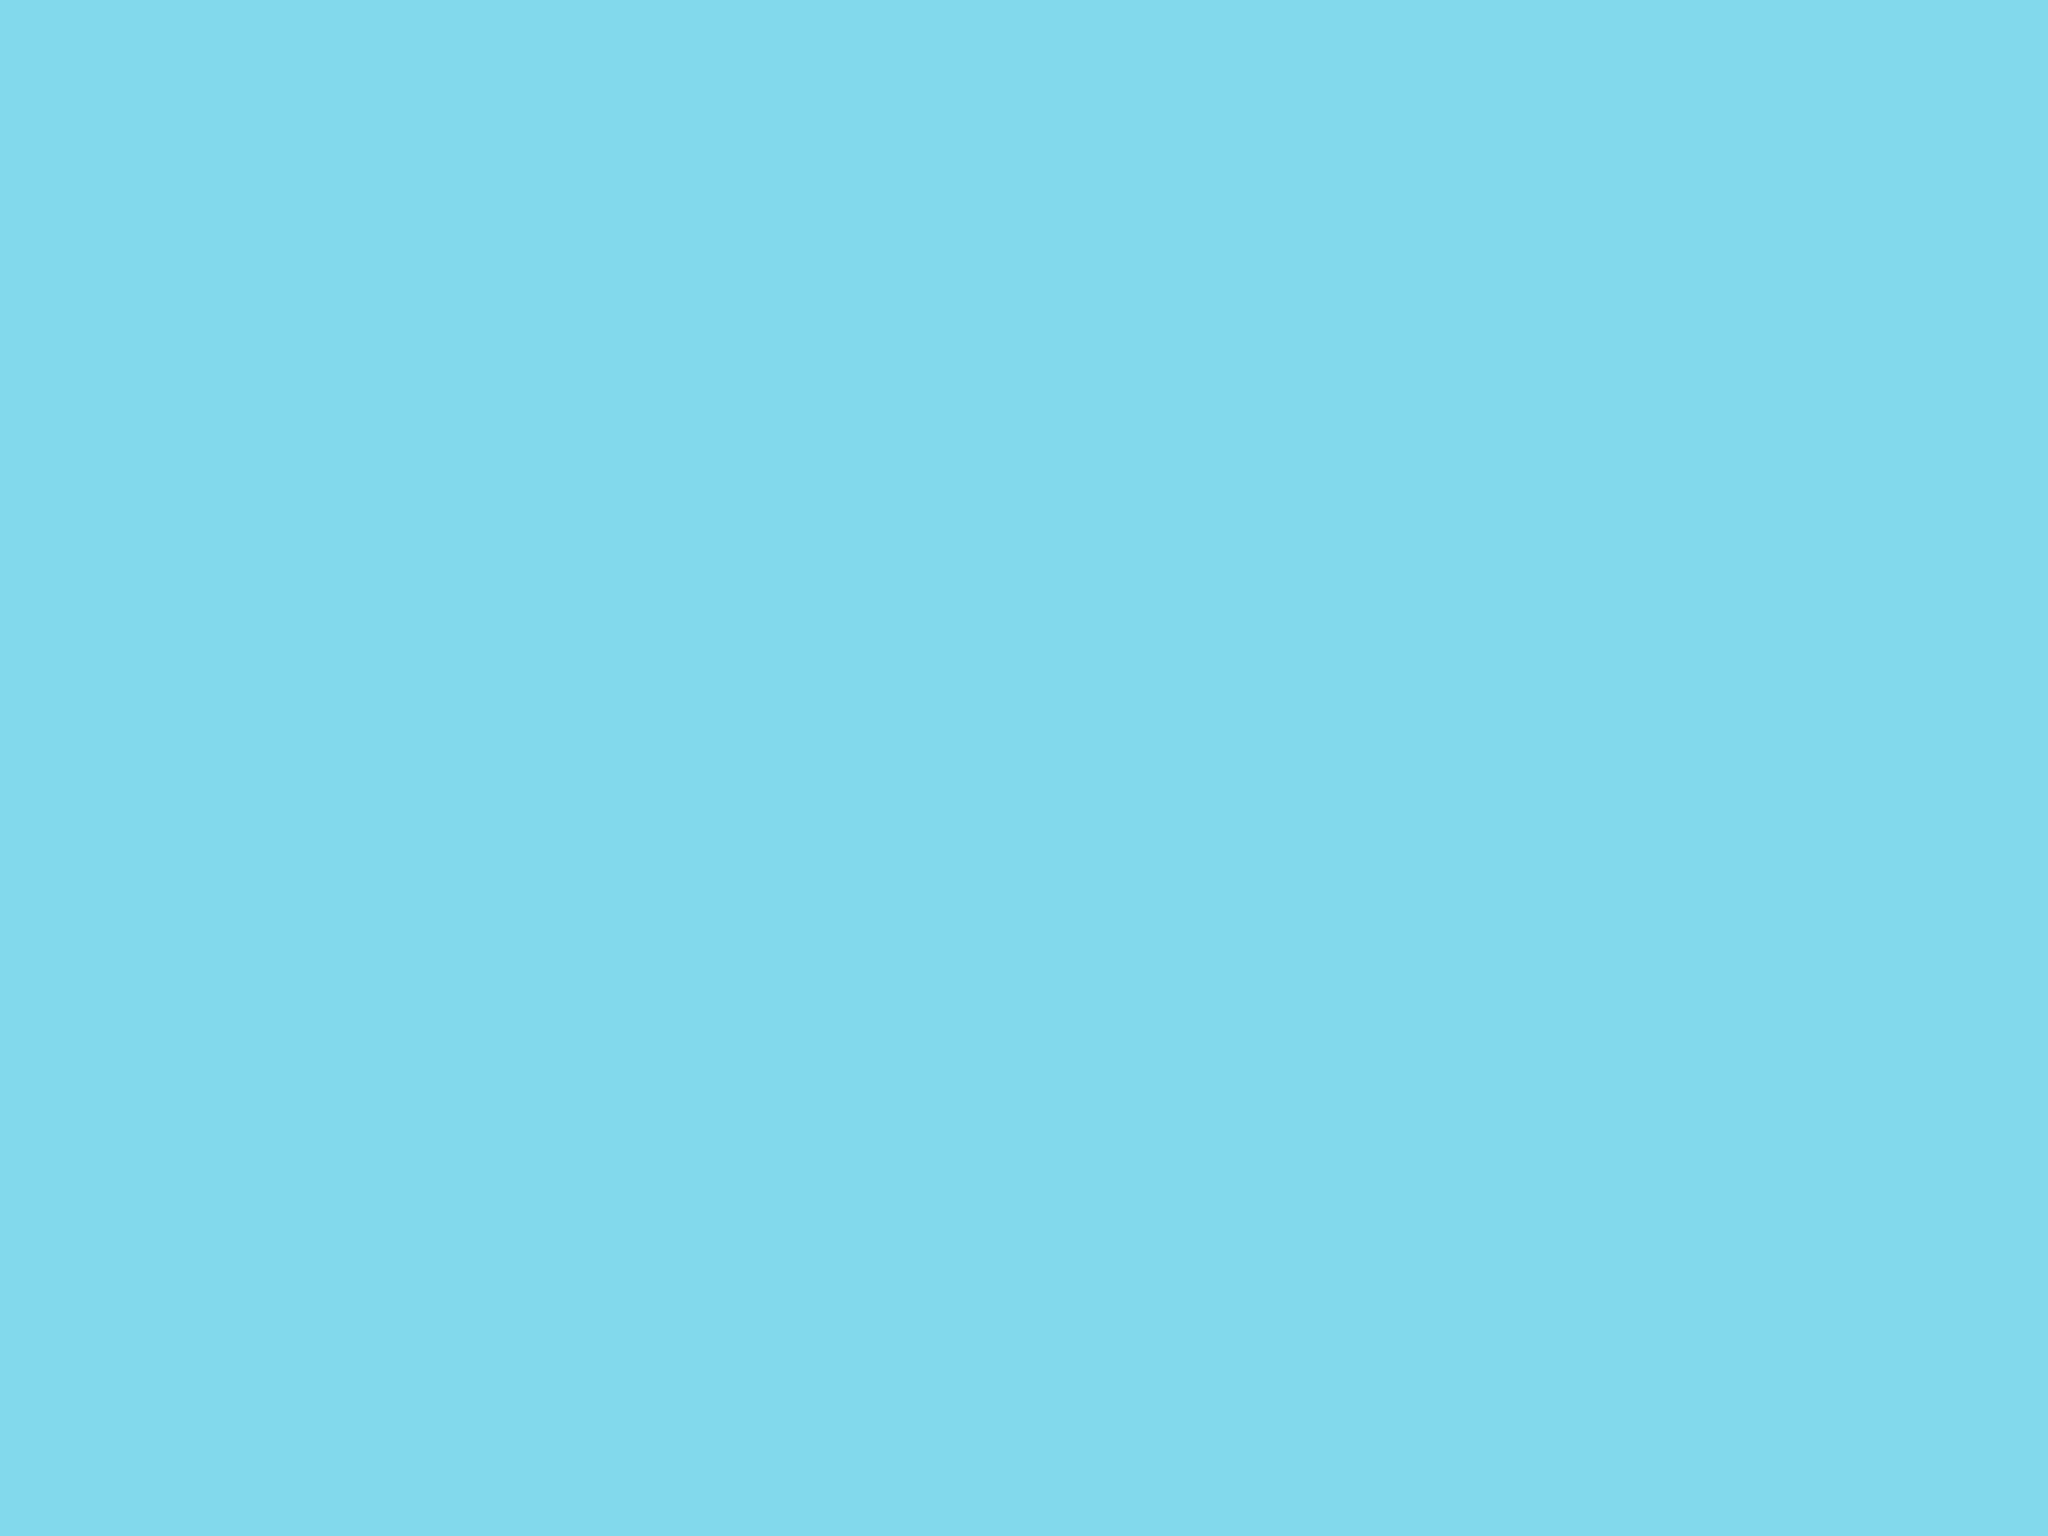 2048x1536 Medium Sky Blue Solid Color Background